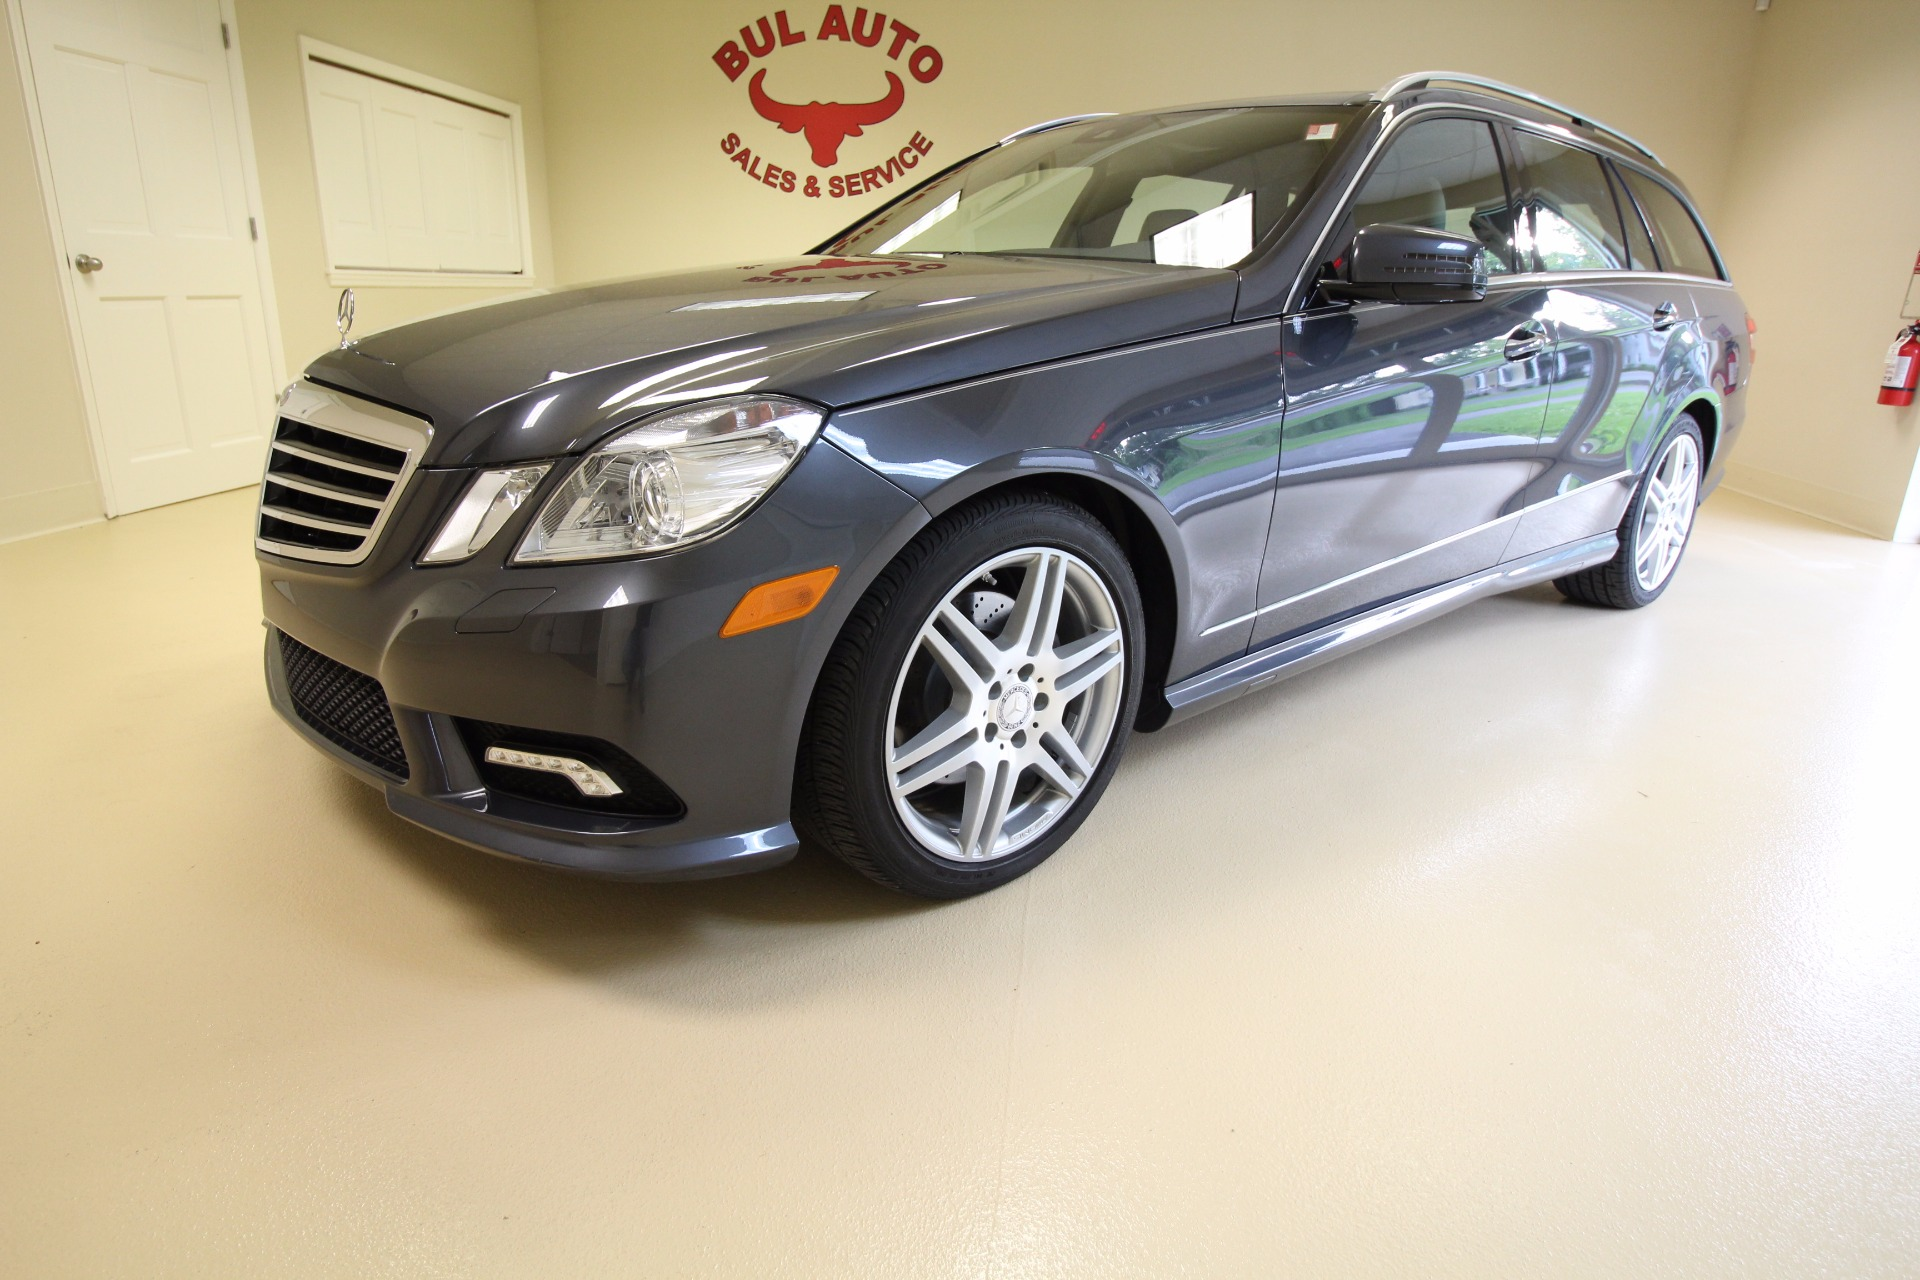 2011 mercedes benz e class wagon e350 4matic stock 17118 for sale near albany ny ny. Black Bedroom Furniture Sets. Home Design Ideas